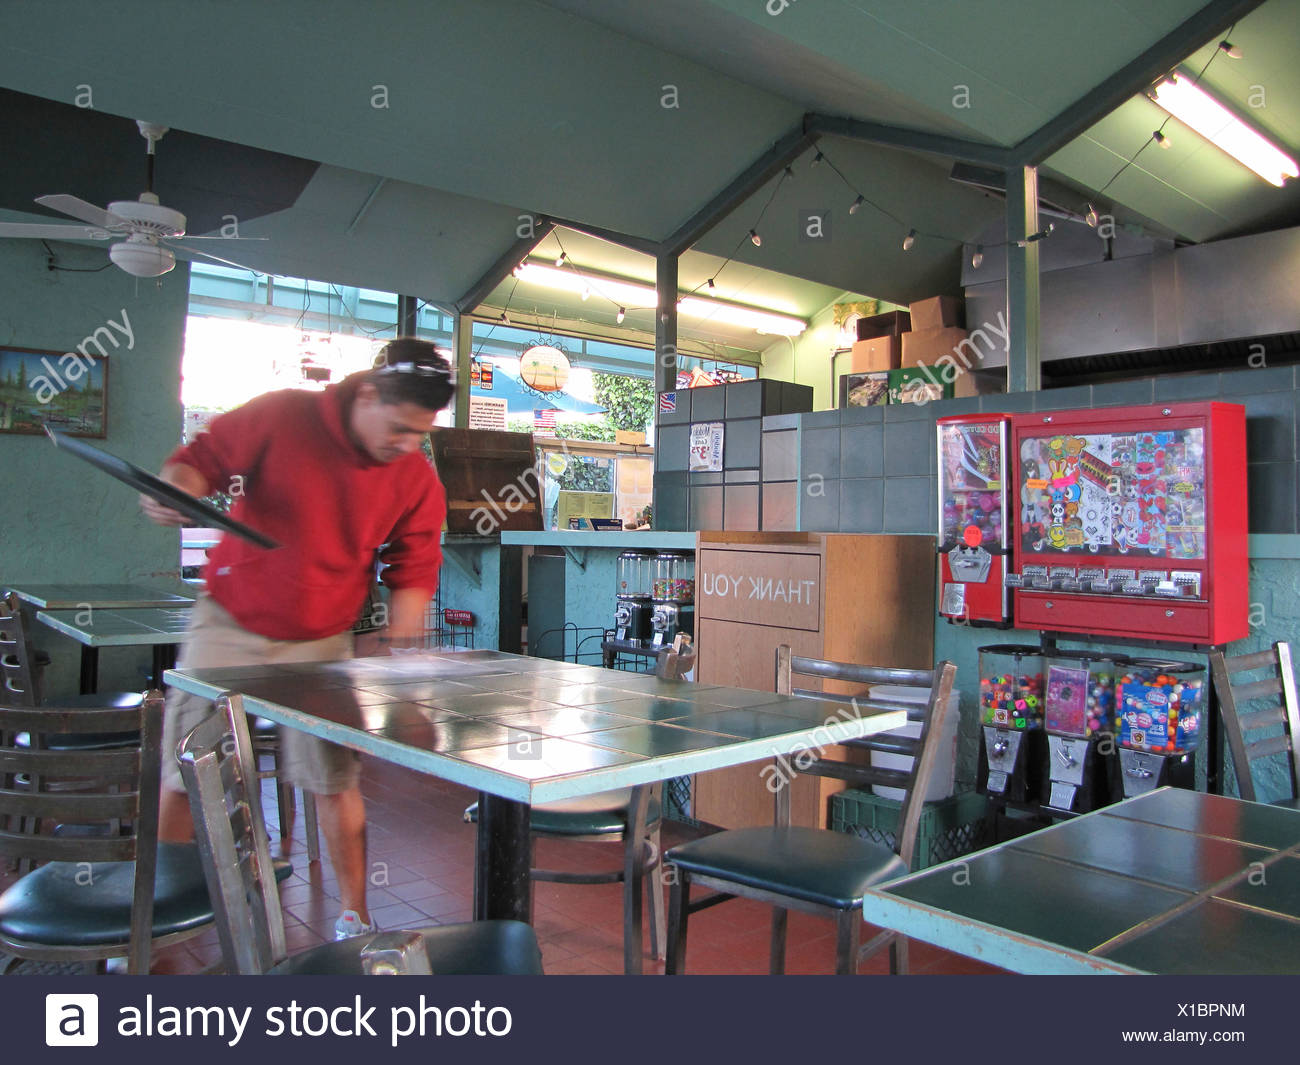 Man cleaning table in American fast food restaurant, chewing-gum machine in the left of the image, USA, California, Santa Cruz - Stock Image